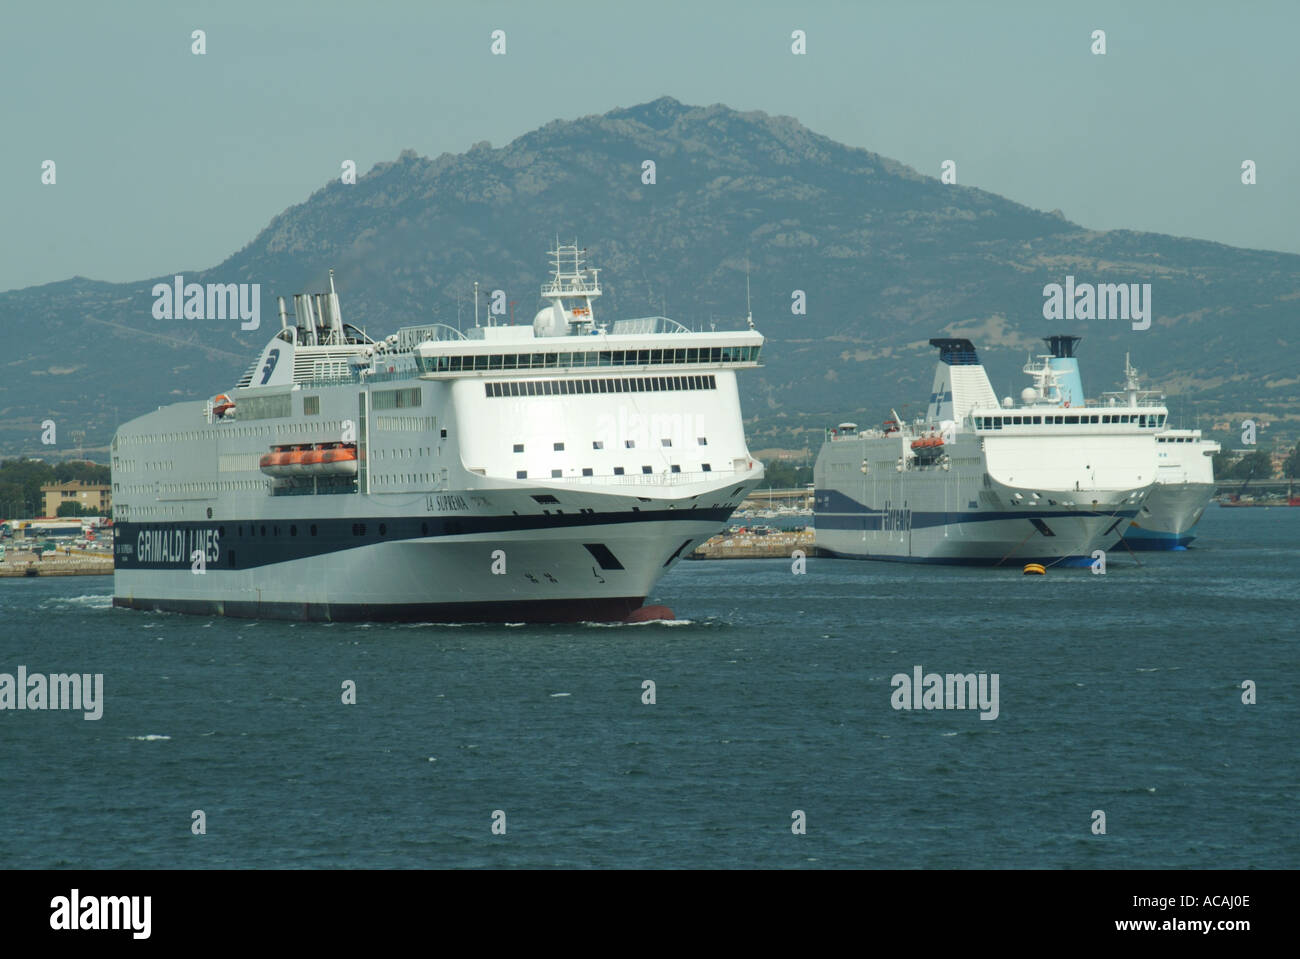 Olbia Sardinia port Grimaldi Lines La Suprema ferry departing with two other ferries at moorings - Stock Image